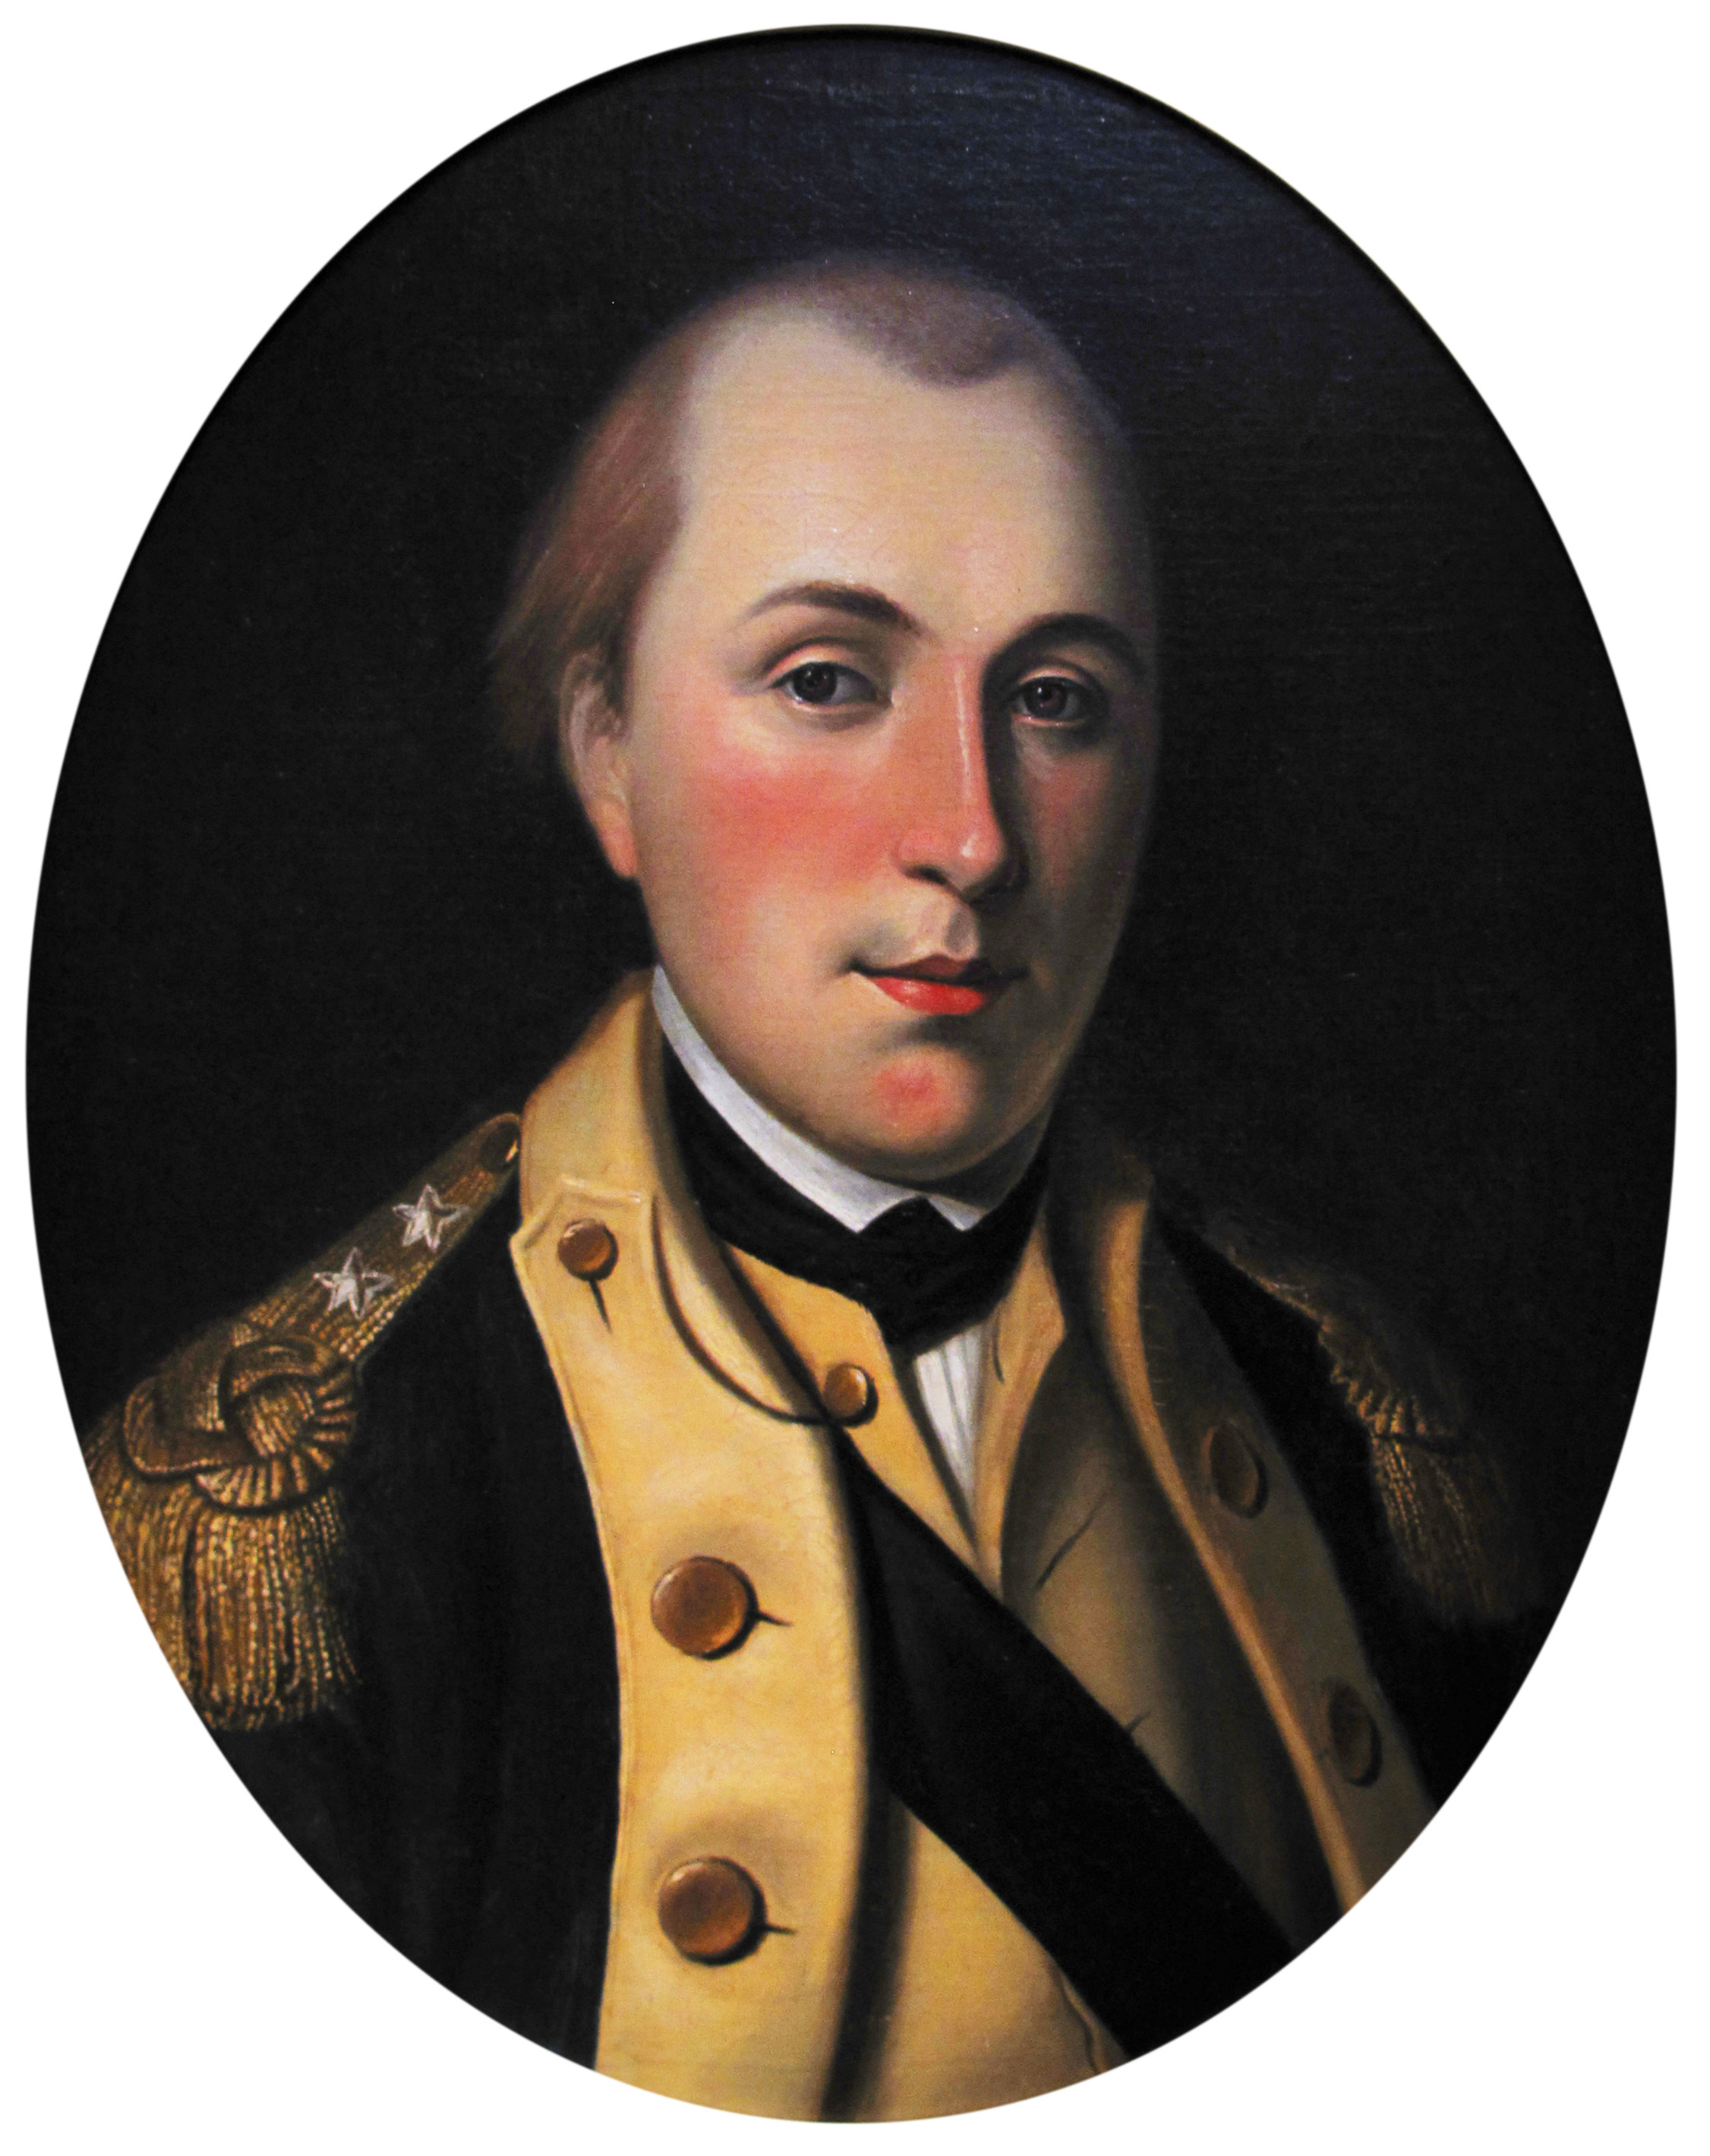 The young Marquis de Lafayette wears the uniform of a major general of the Continental Army. Painting by Charles Willson Peale, 1780.